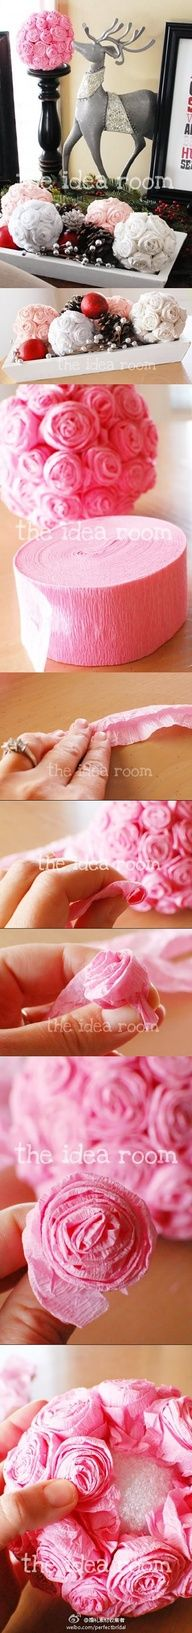 Crepe paper rolled flower-covered balls - this DIY project would work for weddings, bridal showers or holiday decorations.